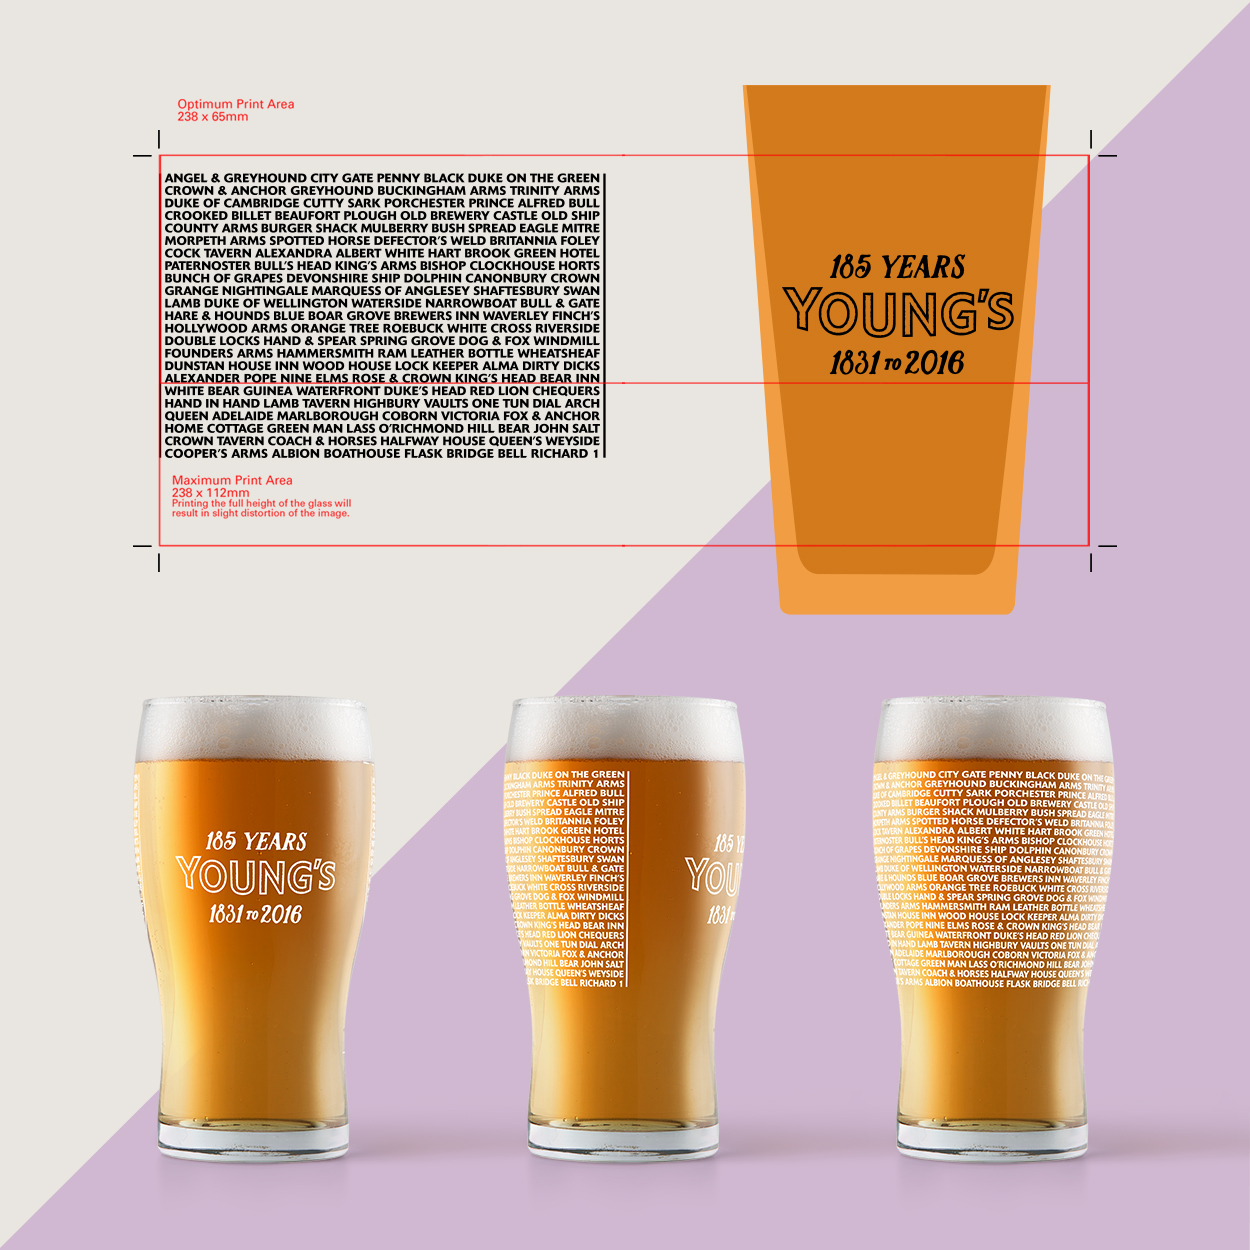 Young's Day custom designed commemorative pint glass mockup and packaging net